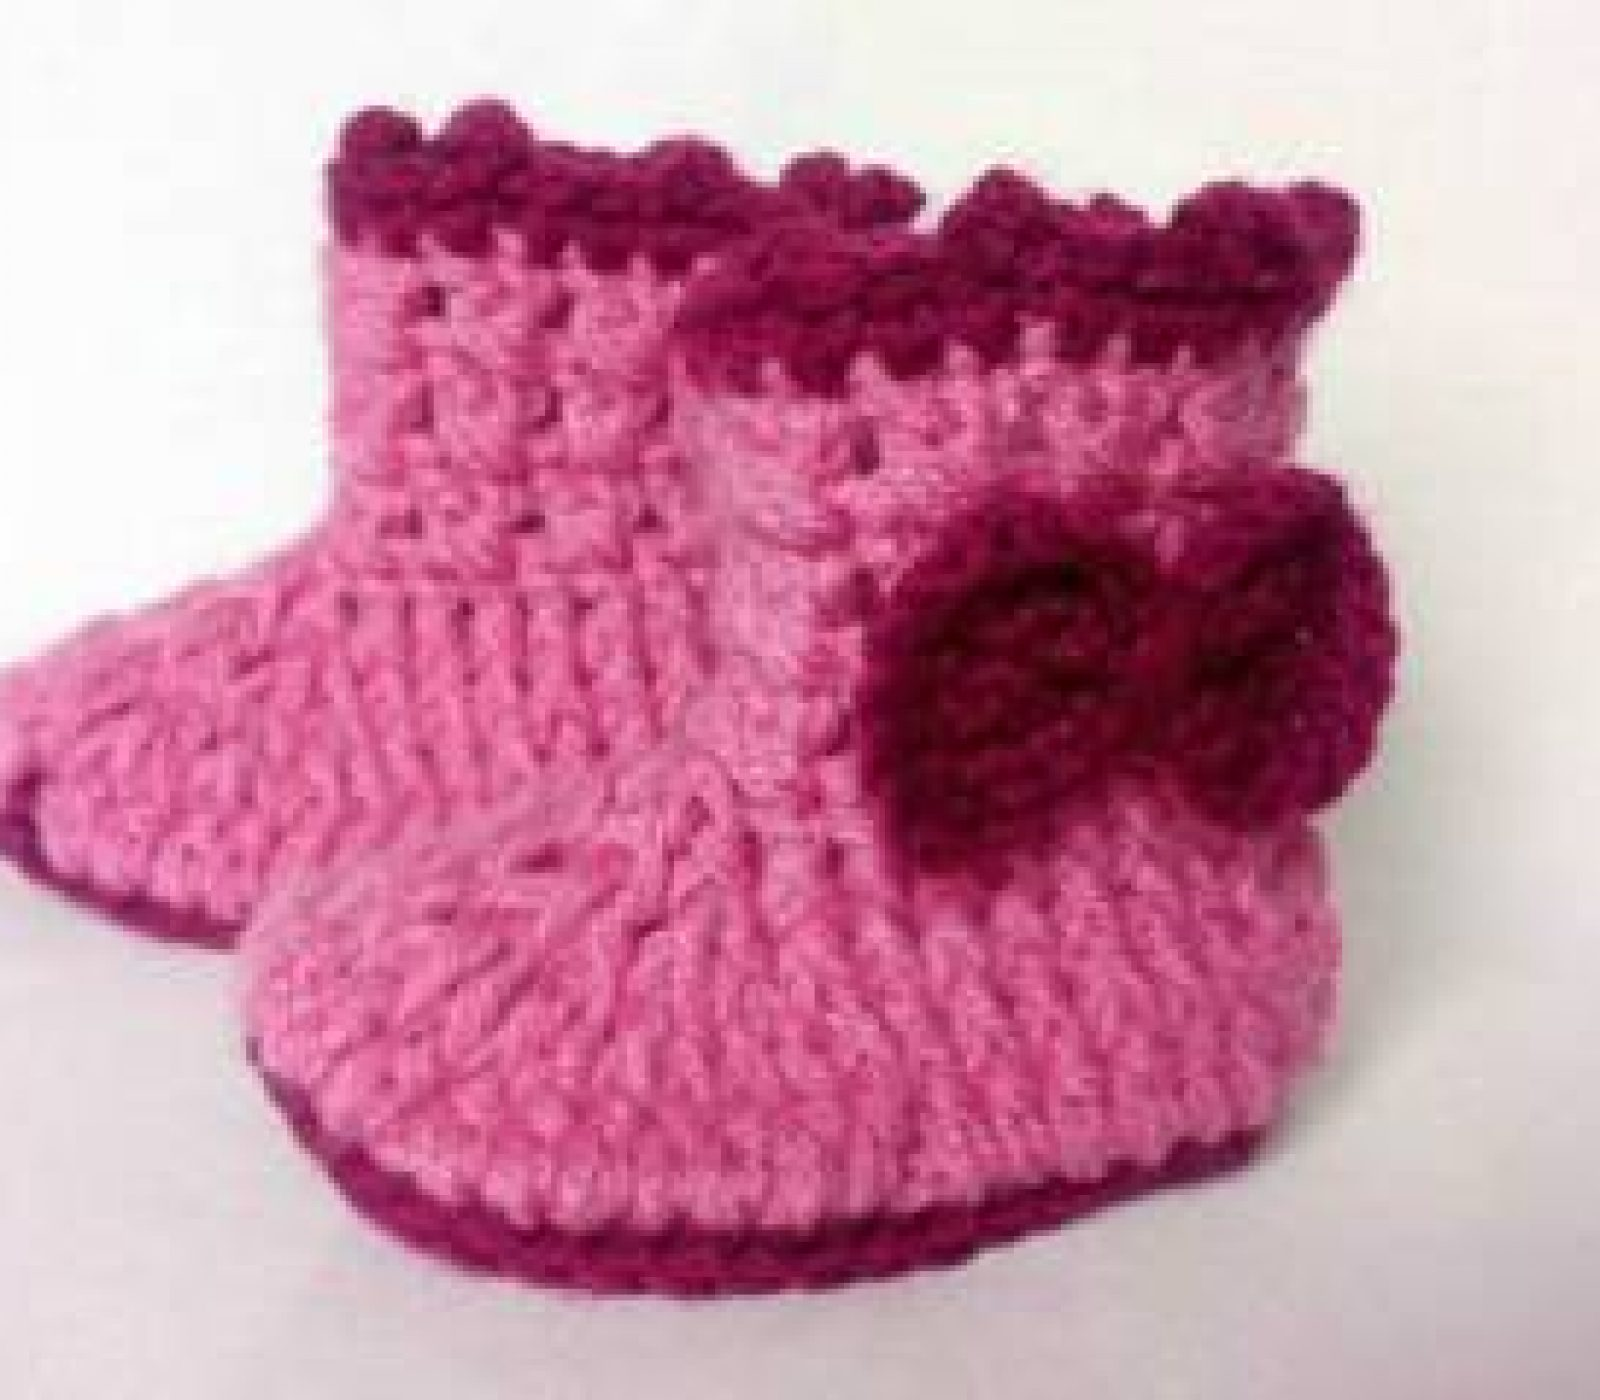 Crochet baby booties pattern!